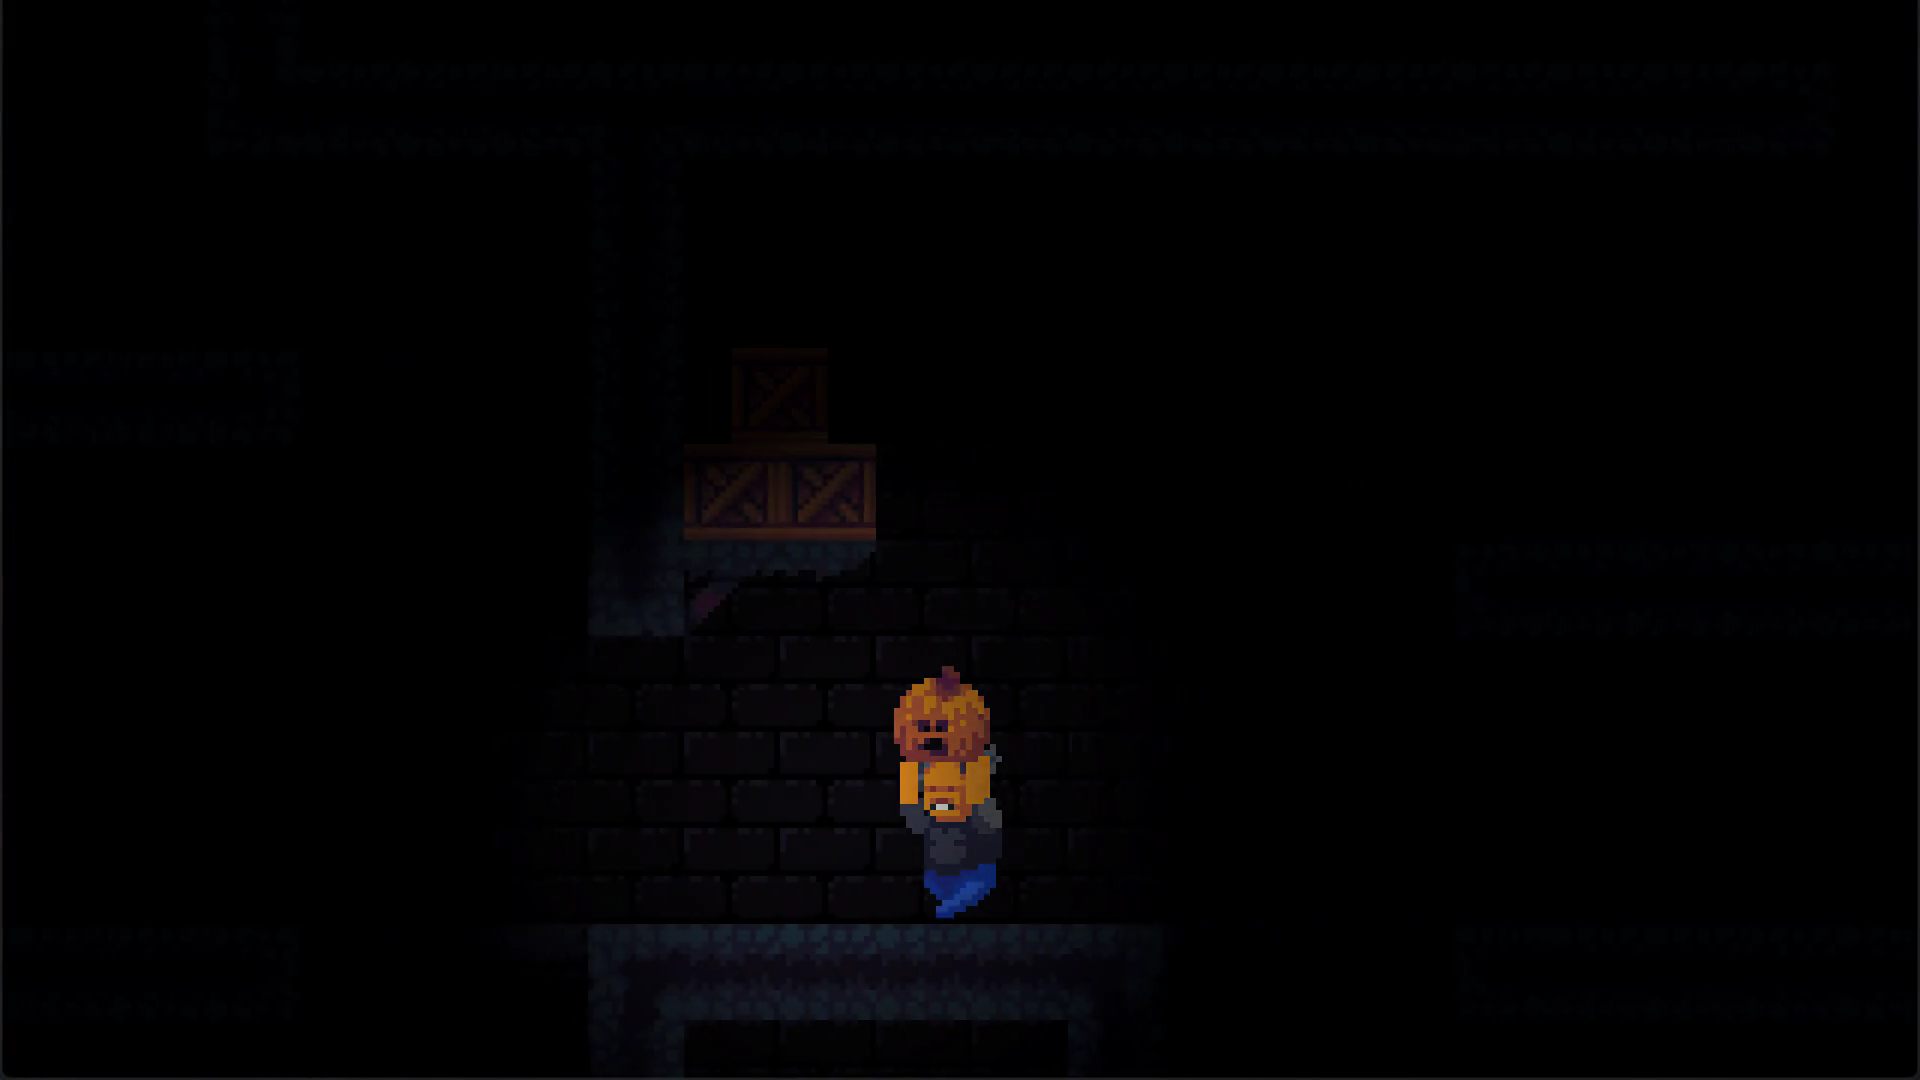 A screenshot of Midnight Manor with the main character holding a pumpkin in a dark cellar.